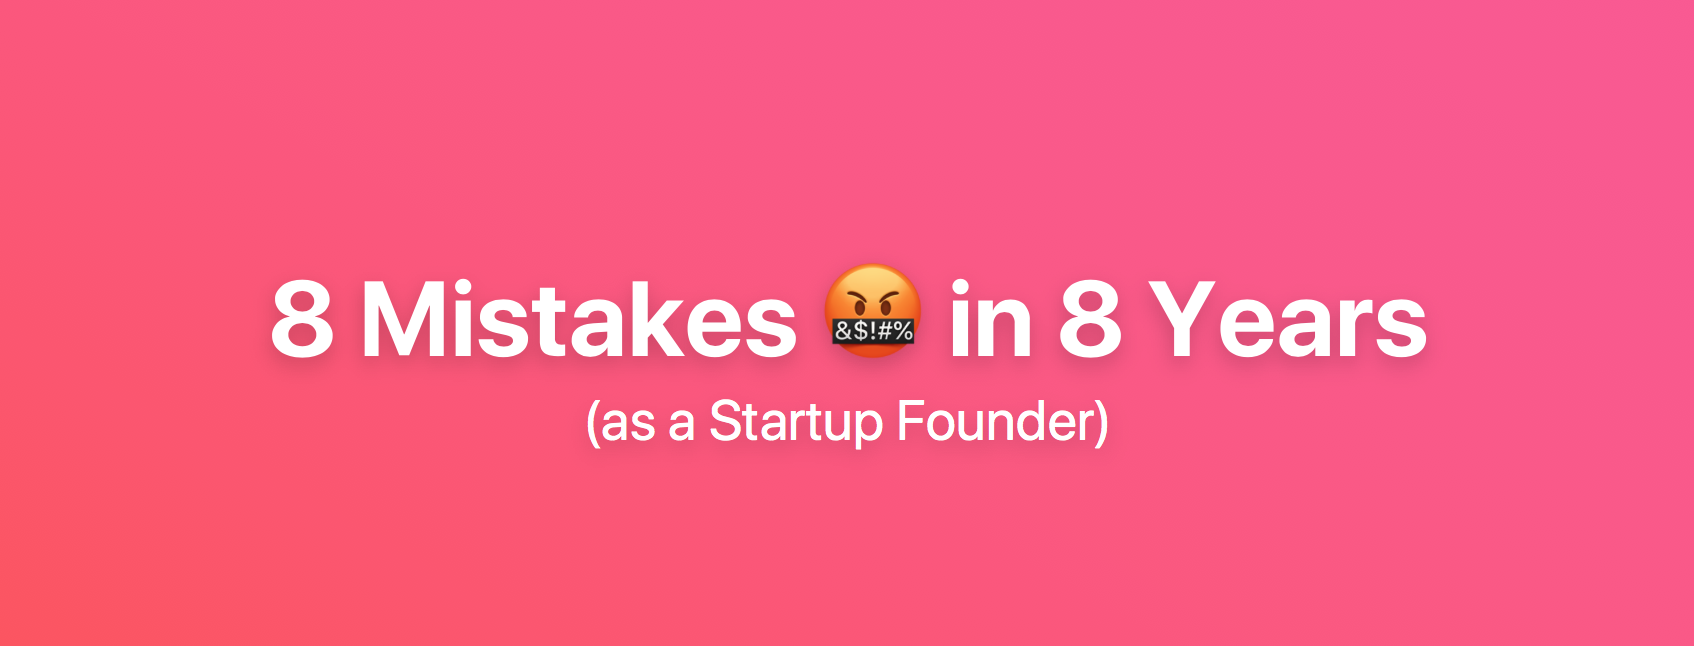 8 Mistakes we made in our Company's First 8 Years